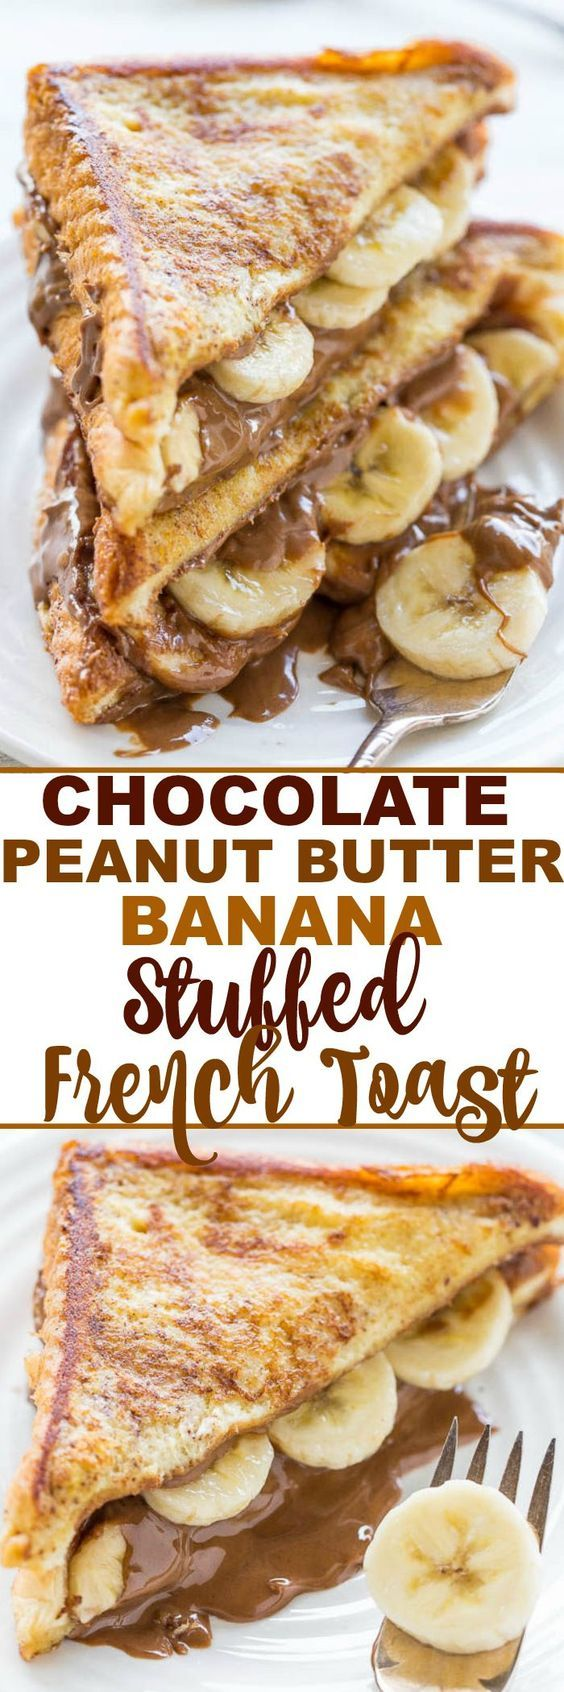 #chocolate #peanutbutter #frenchtoast #breakfast #yummy